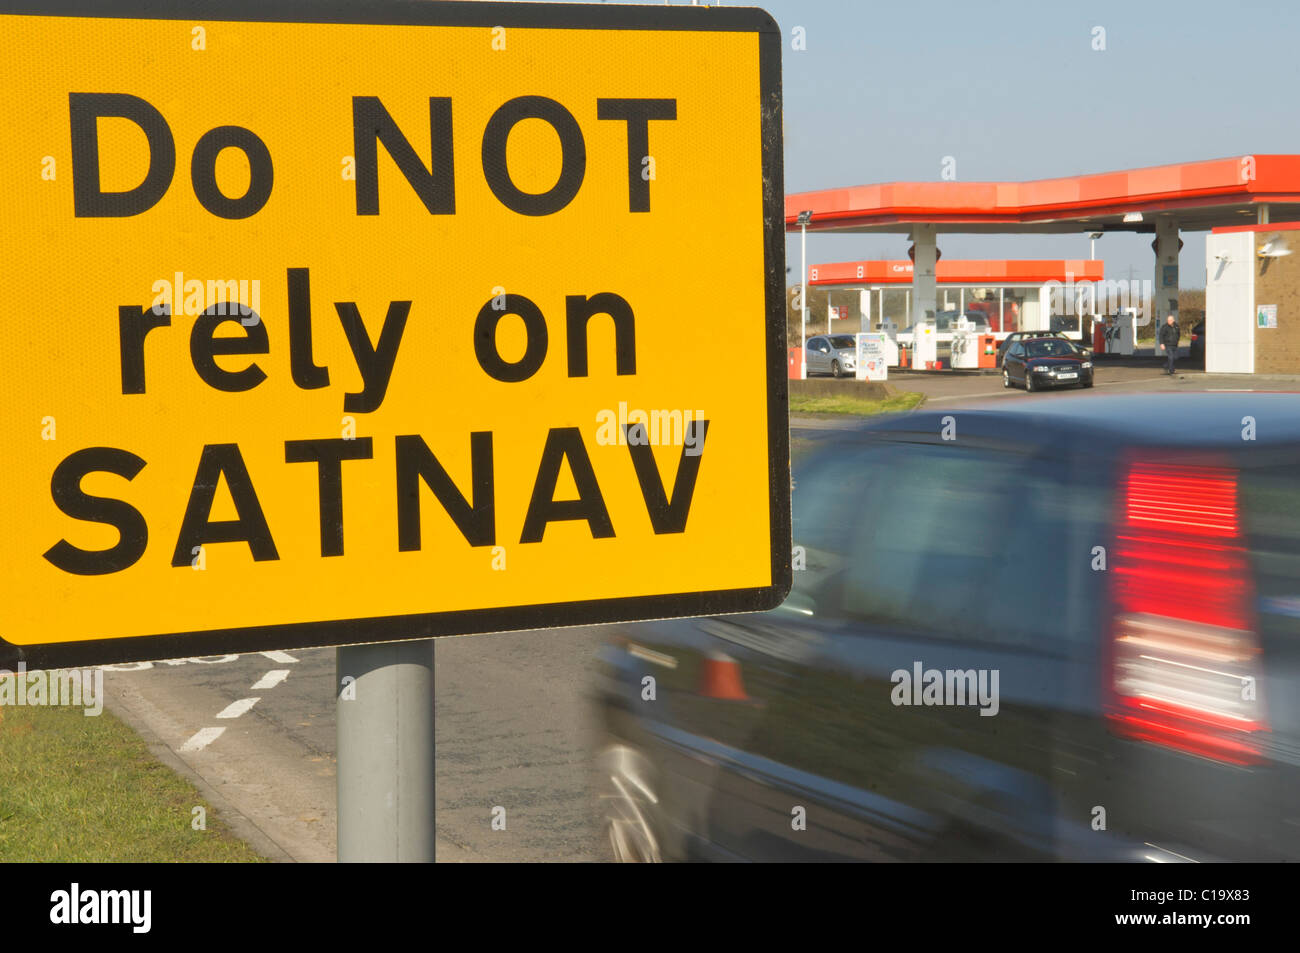 Do not rely on Satnav warning sign on busy road - Stock Image